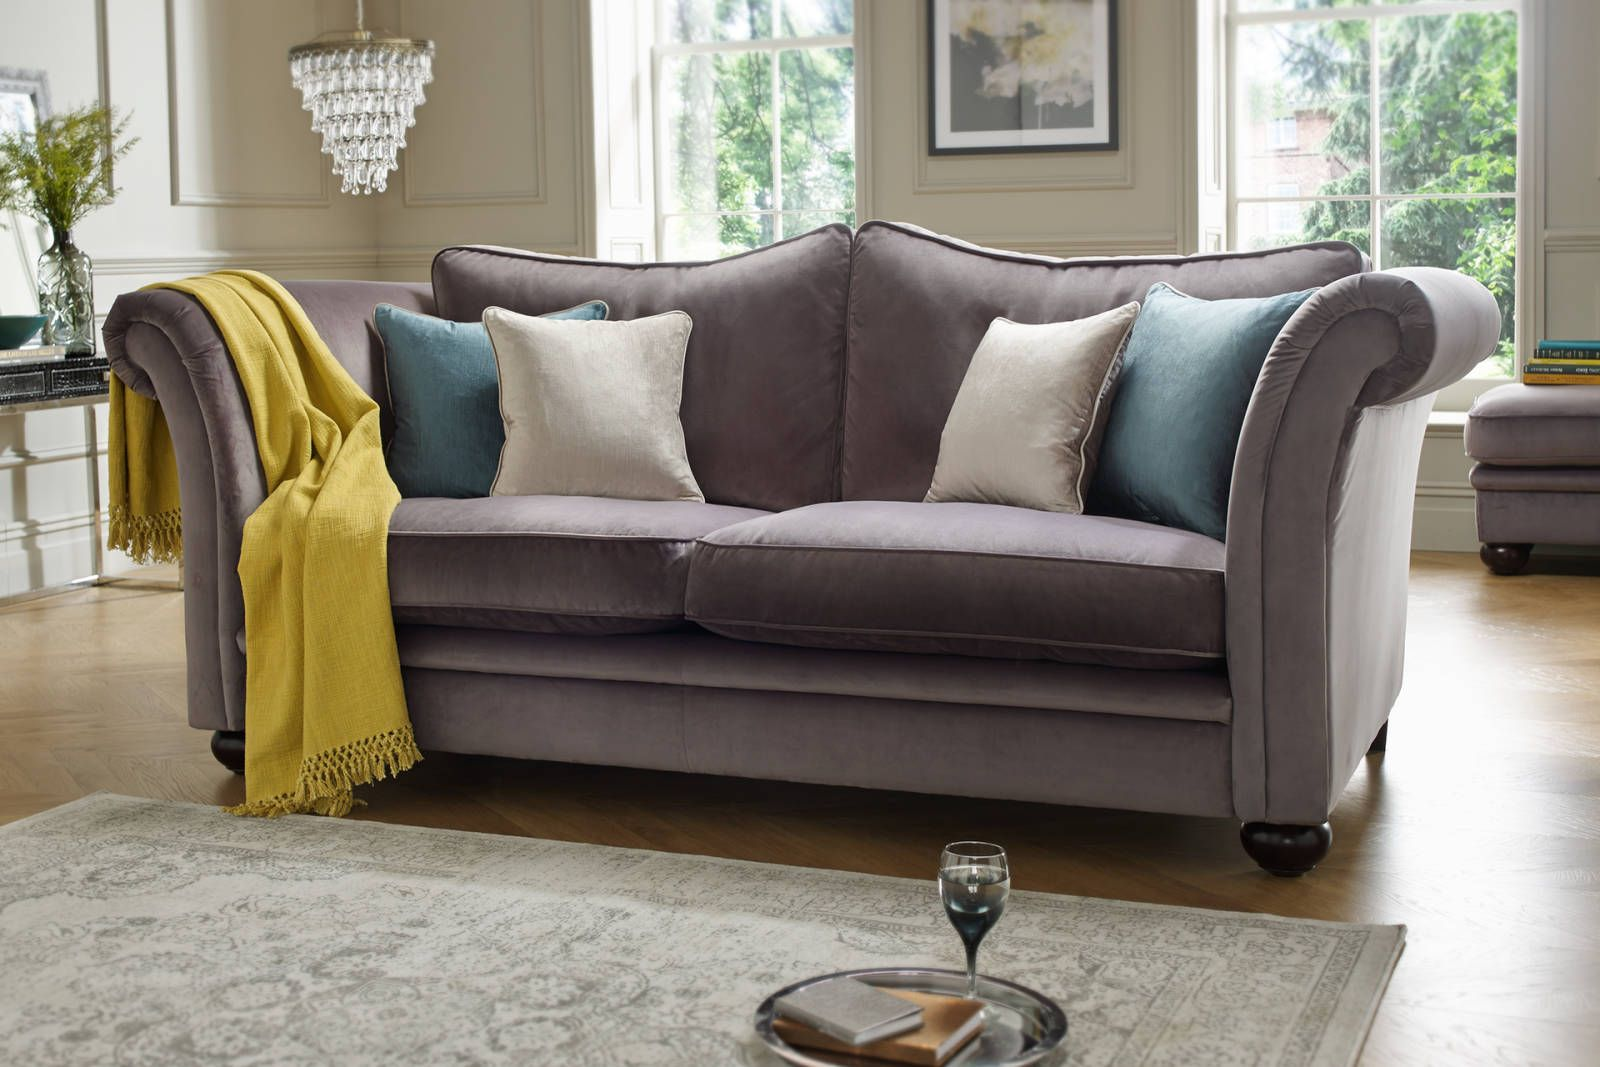 Sofology Owner Belvedere Sofology Sofology Sofa Sofa Bed Fabric Sofa